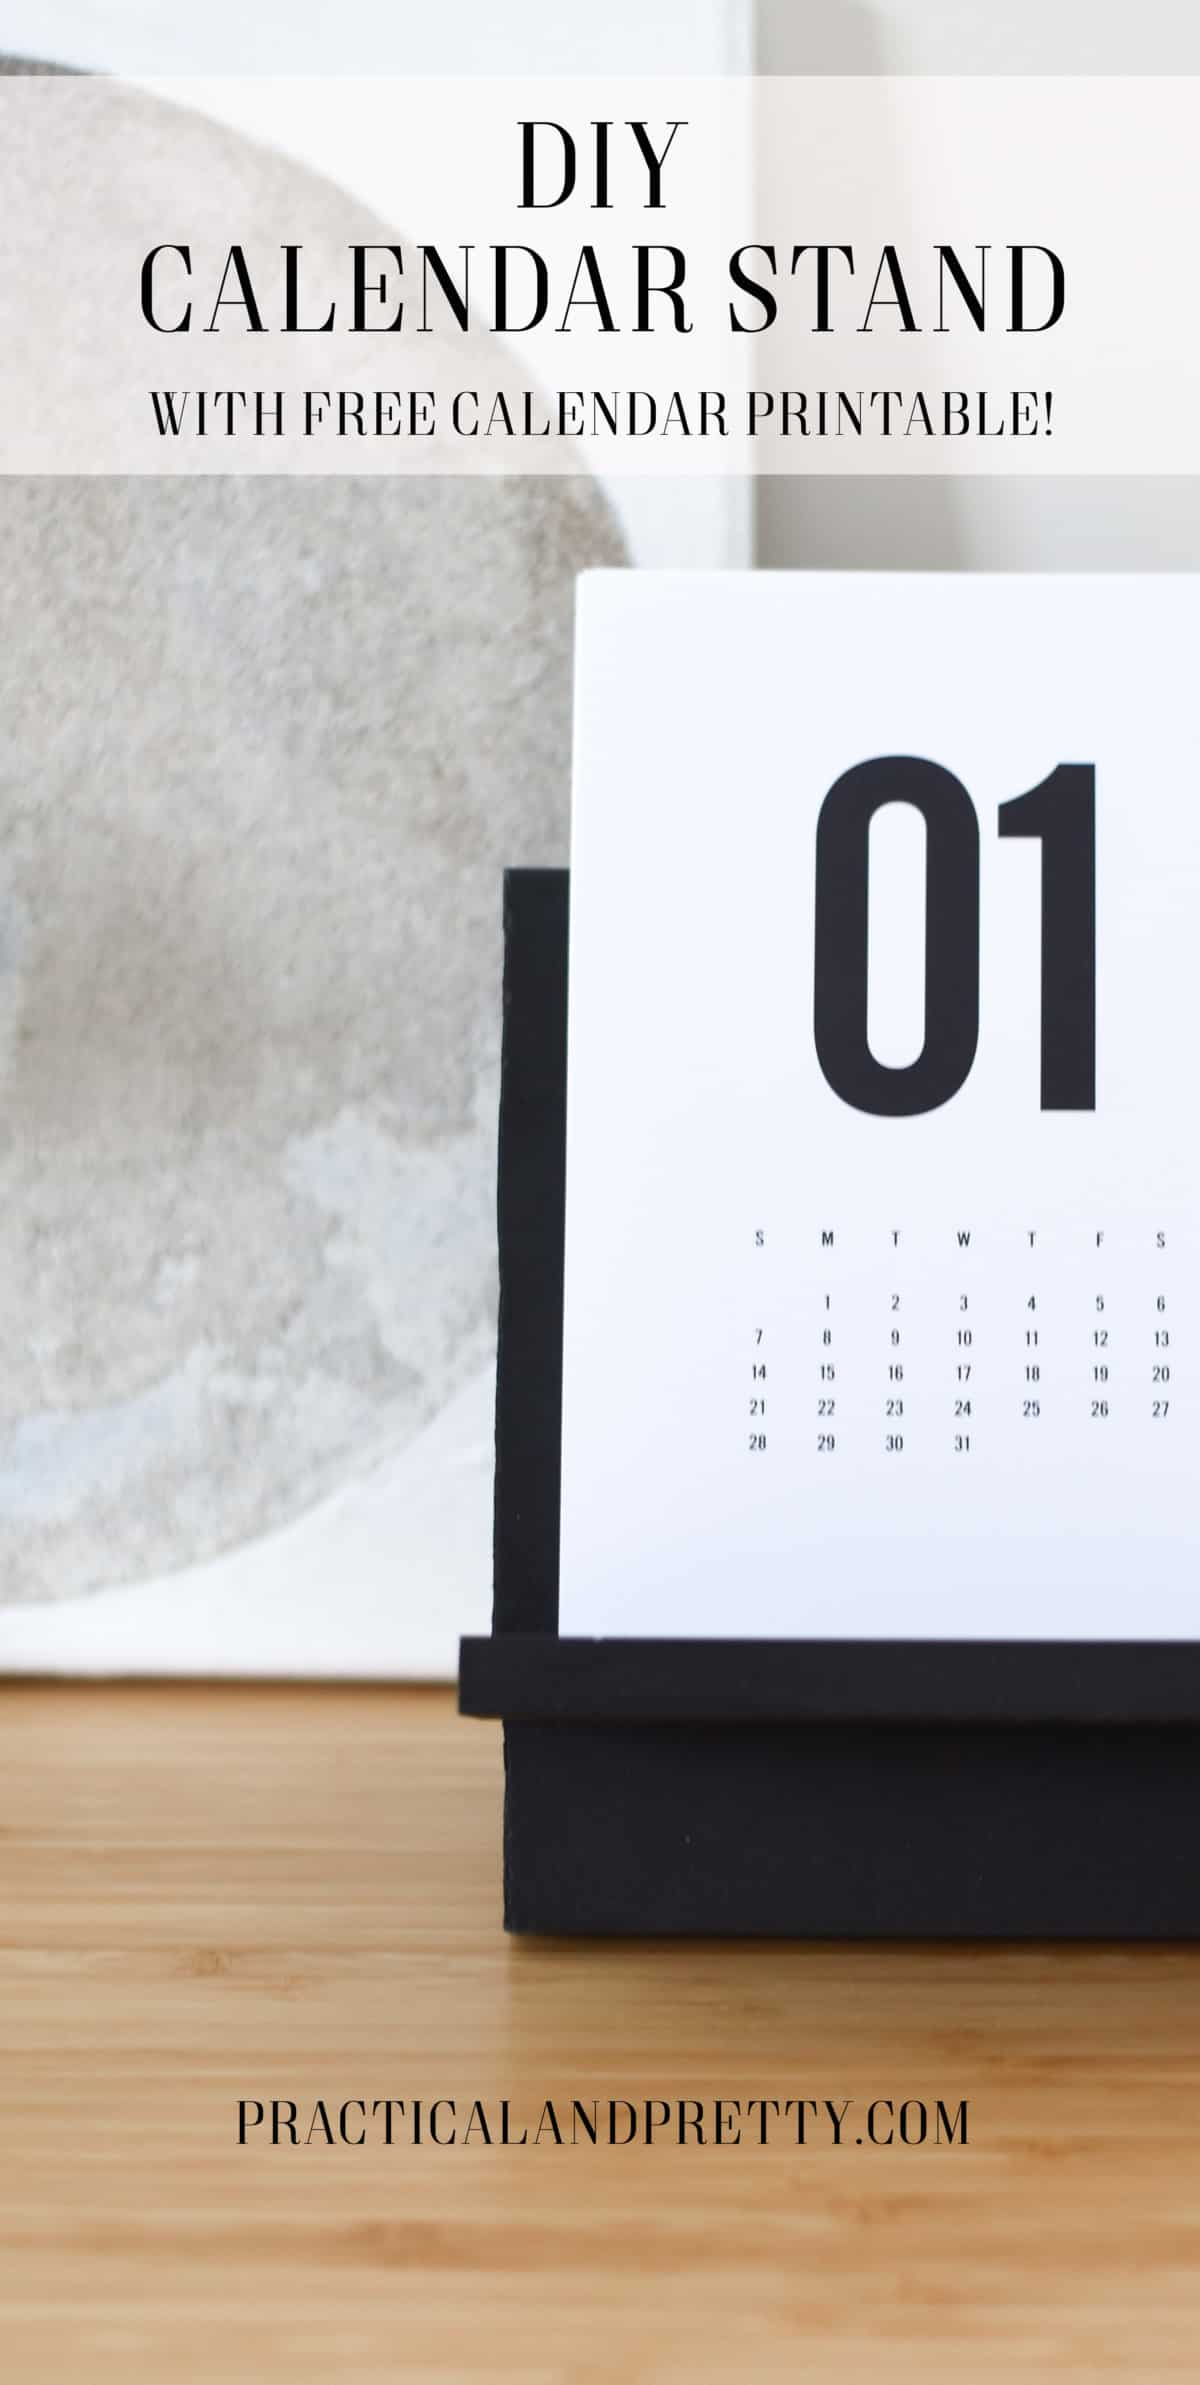 Diy Calendar Nim C : Diy calendar stand with free printable by